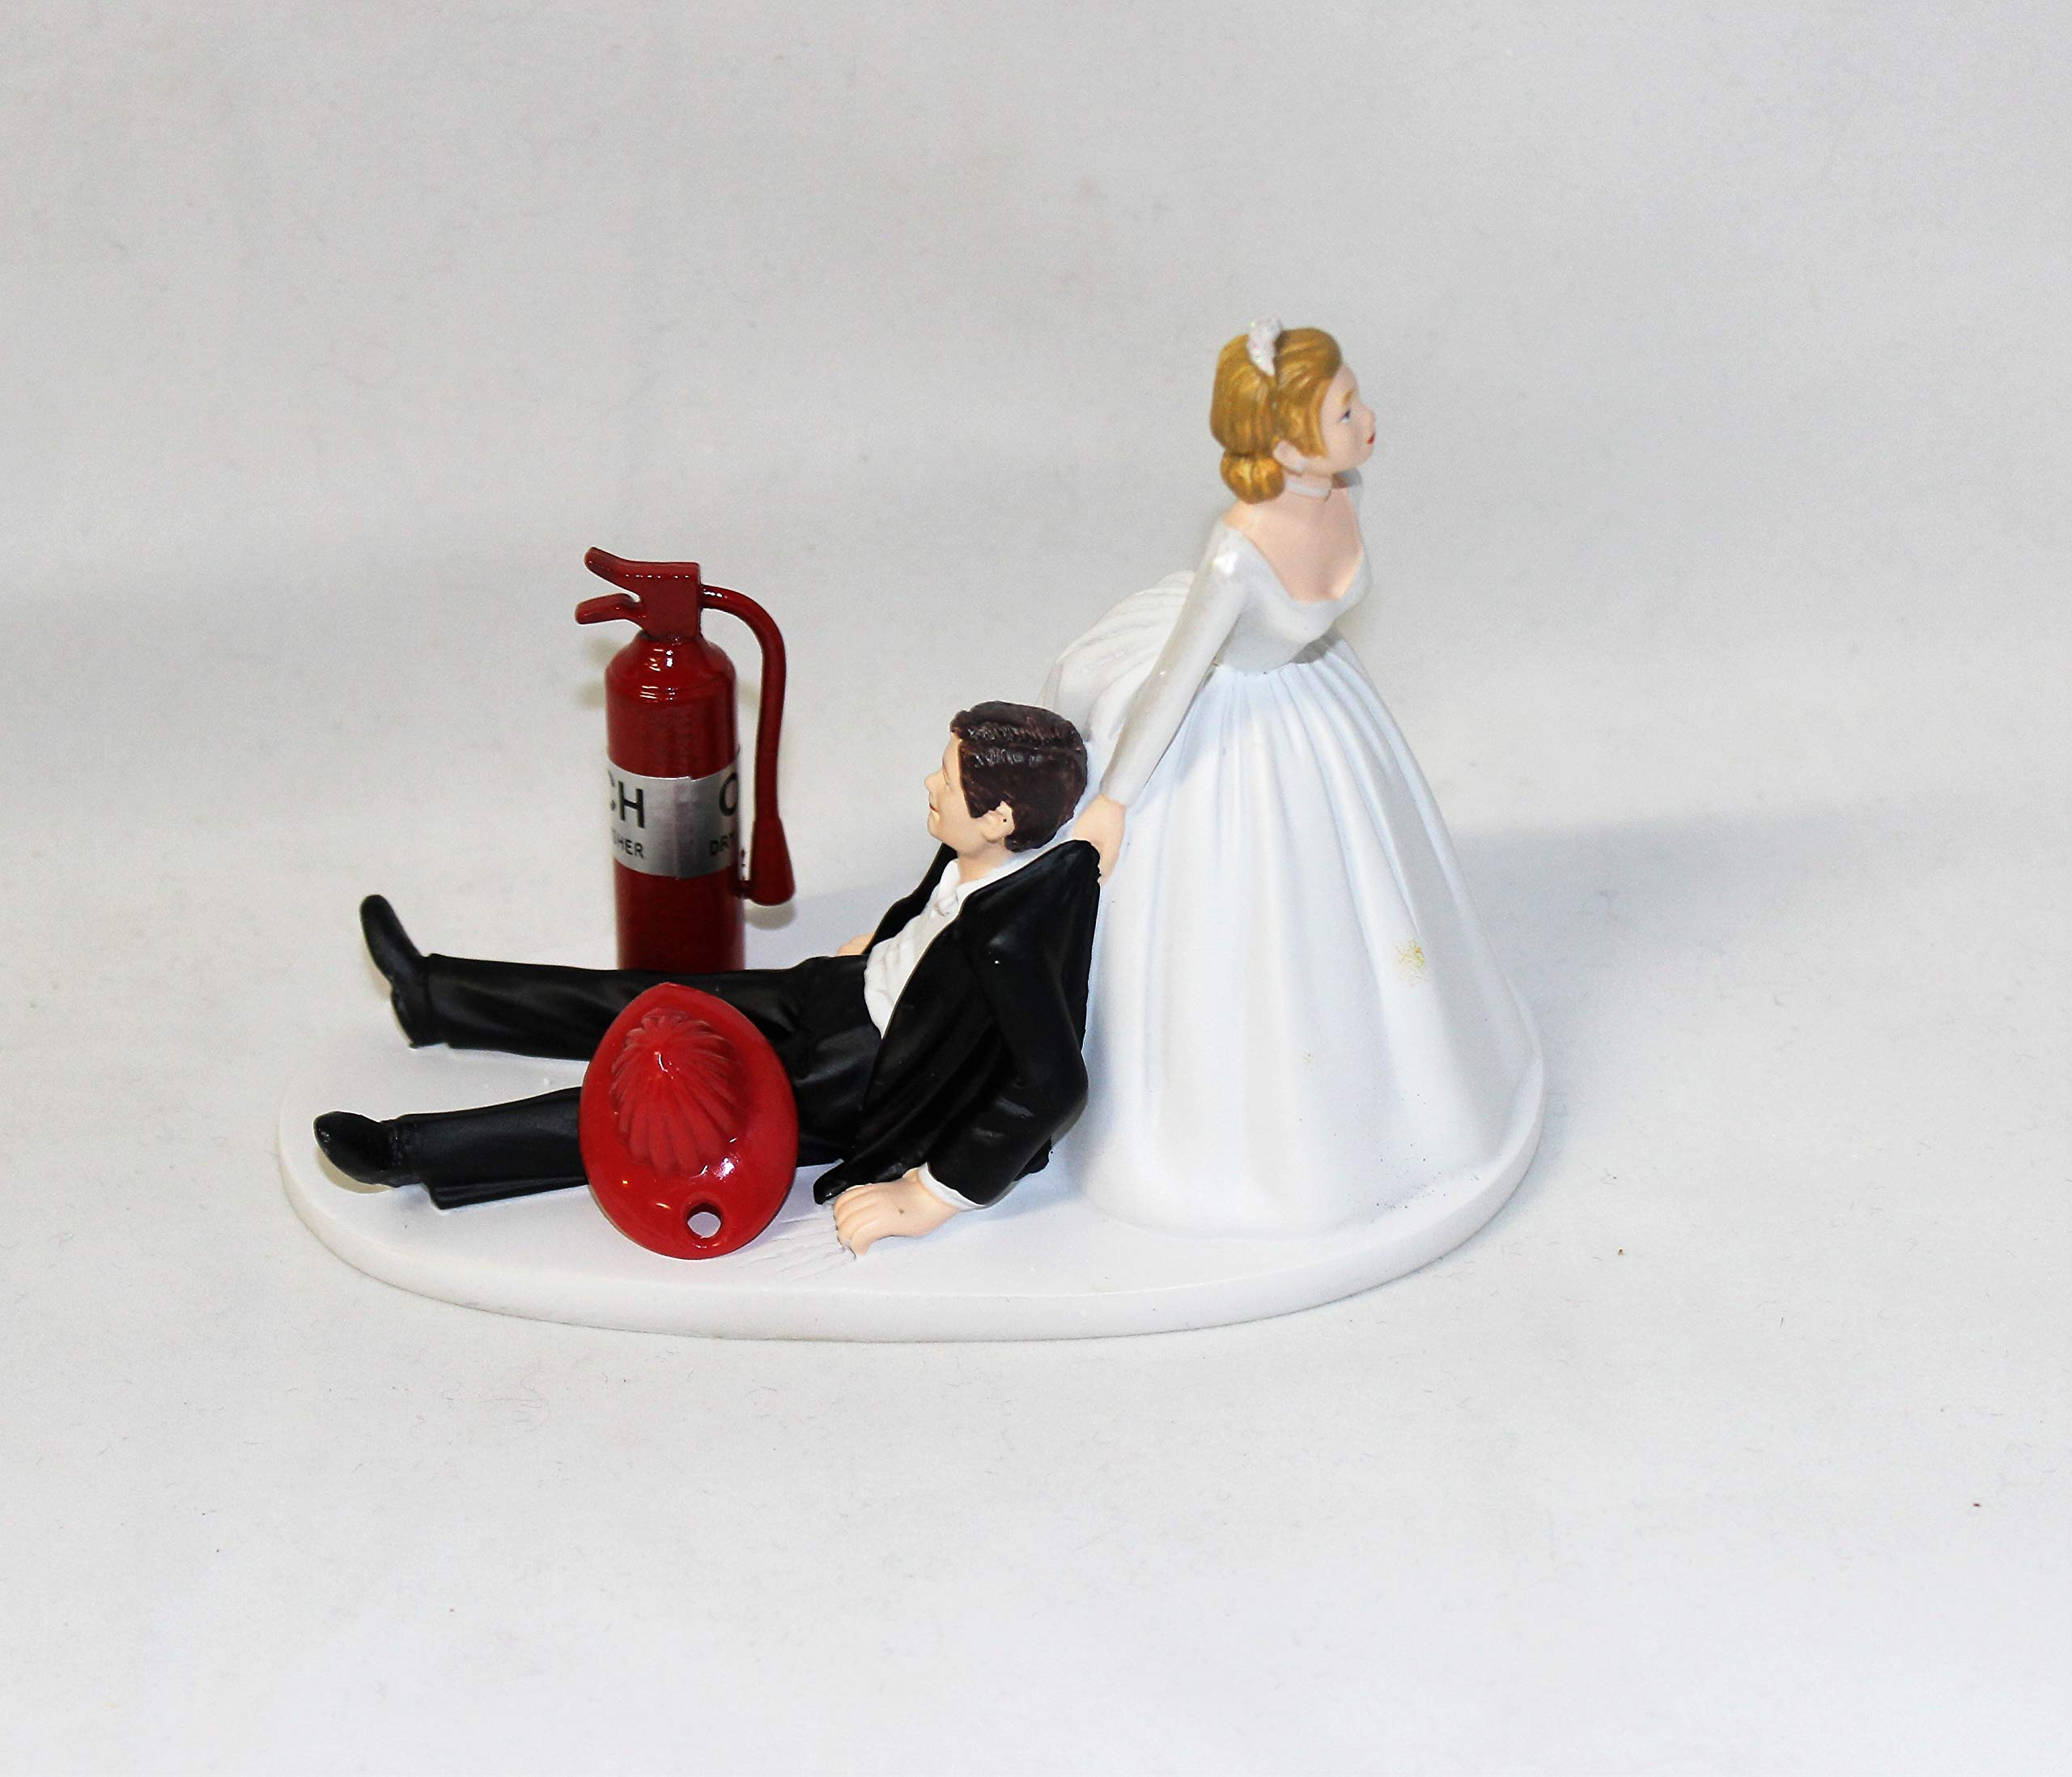 Wedding reception party humorous Fireman Firefighter Cake Topper by Custom Design Wedding Supplies by Suzanne (Image #1)